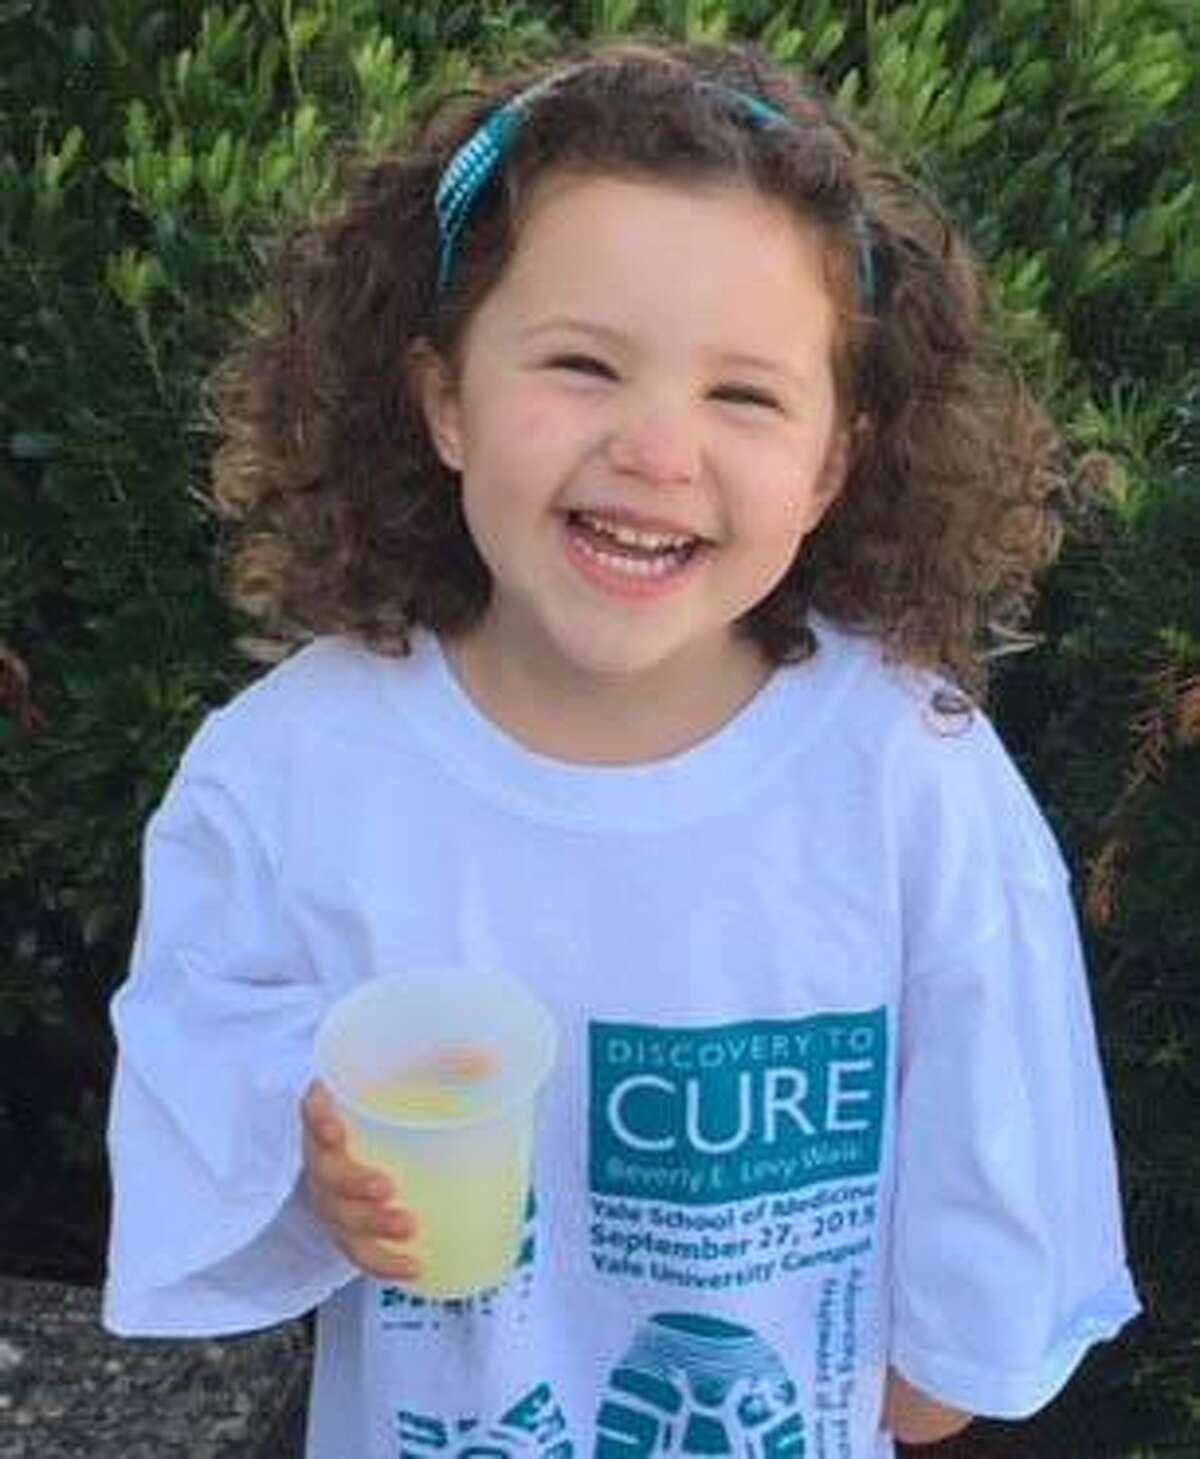 Emma Levinson, 6, will selllemonade at 170 Kings Highway in Milford, Conn. on Sunday, Sept. 1, 2019 from 11:30 a.m. to 3 p.m., to raise money for cancer research.